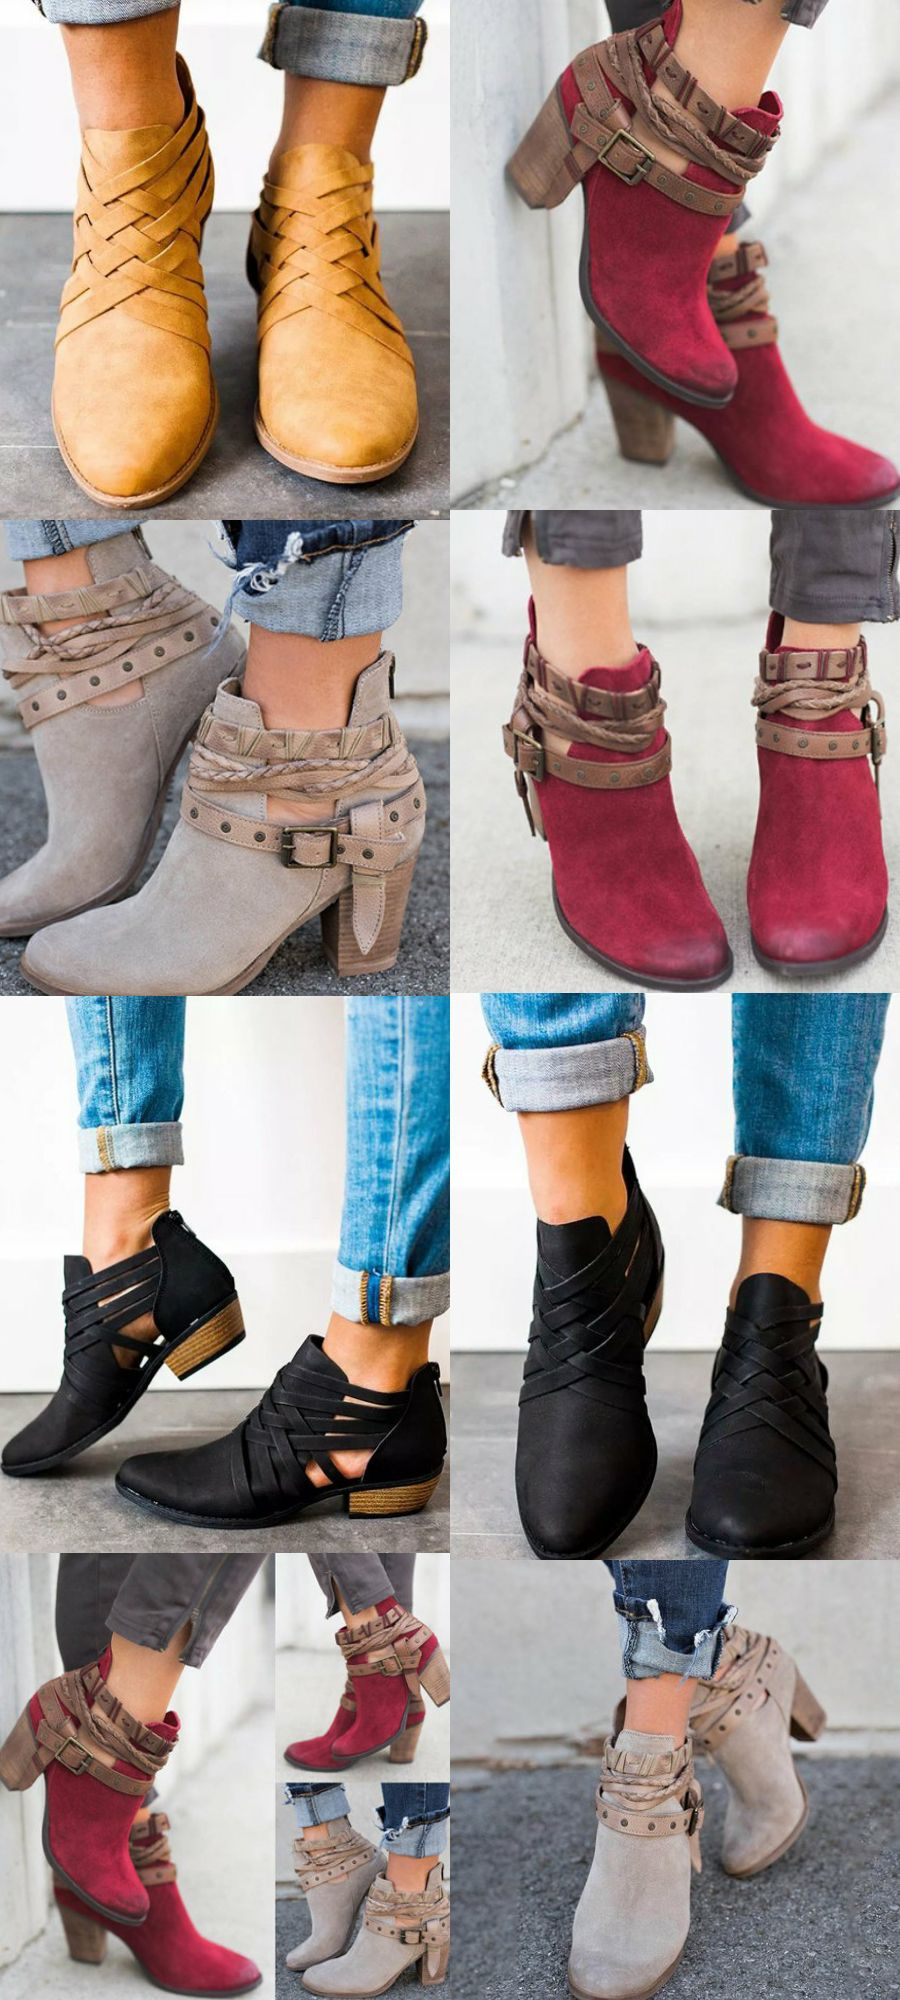 0b702ac8988 Finding new shoes for fall  Top sale shoes for you  fall boots  women shoes   boots casual shoes  fall fashion  2018 fall back to school street ...